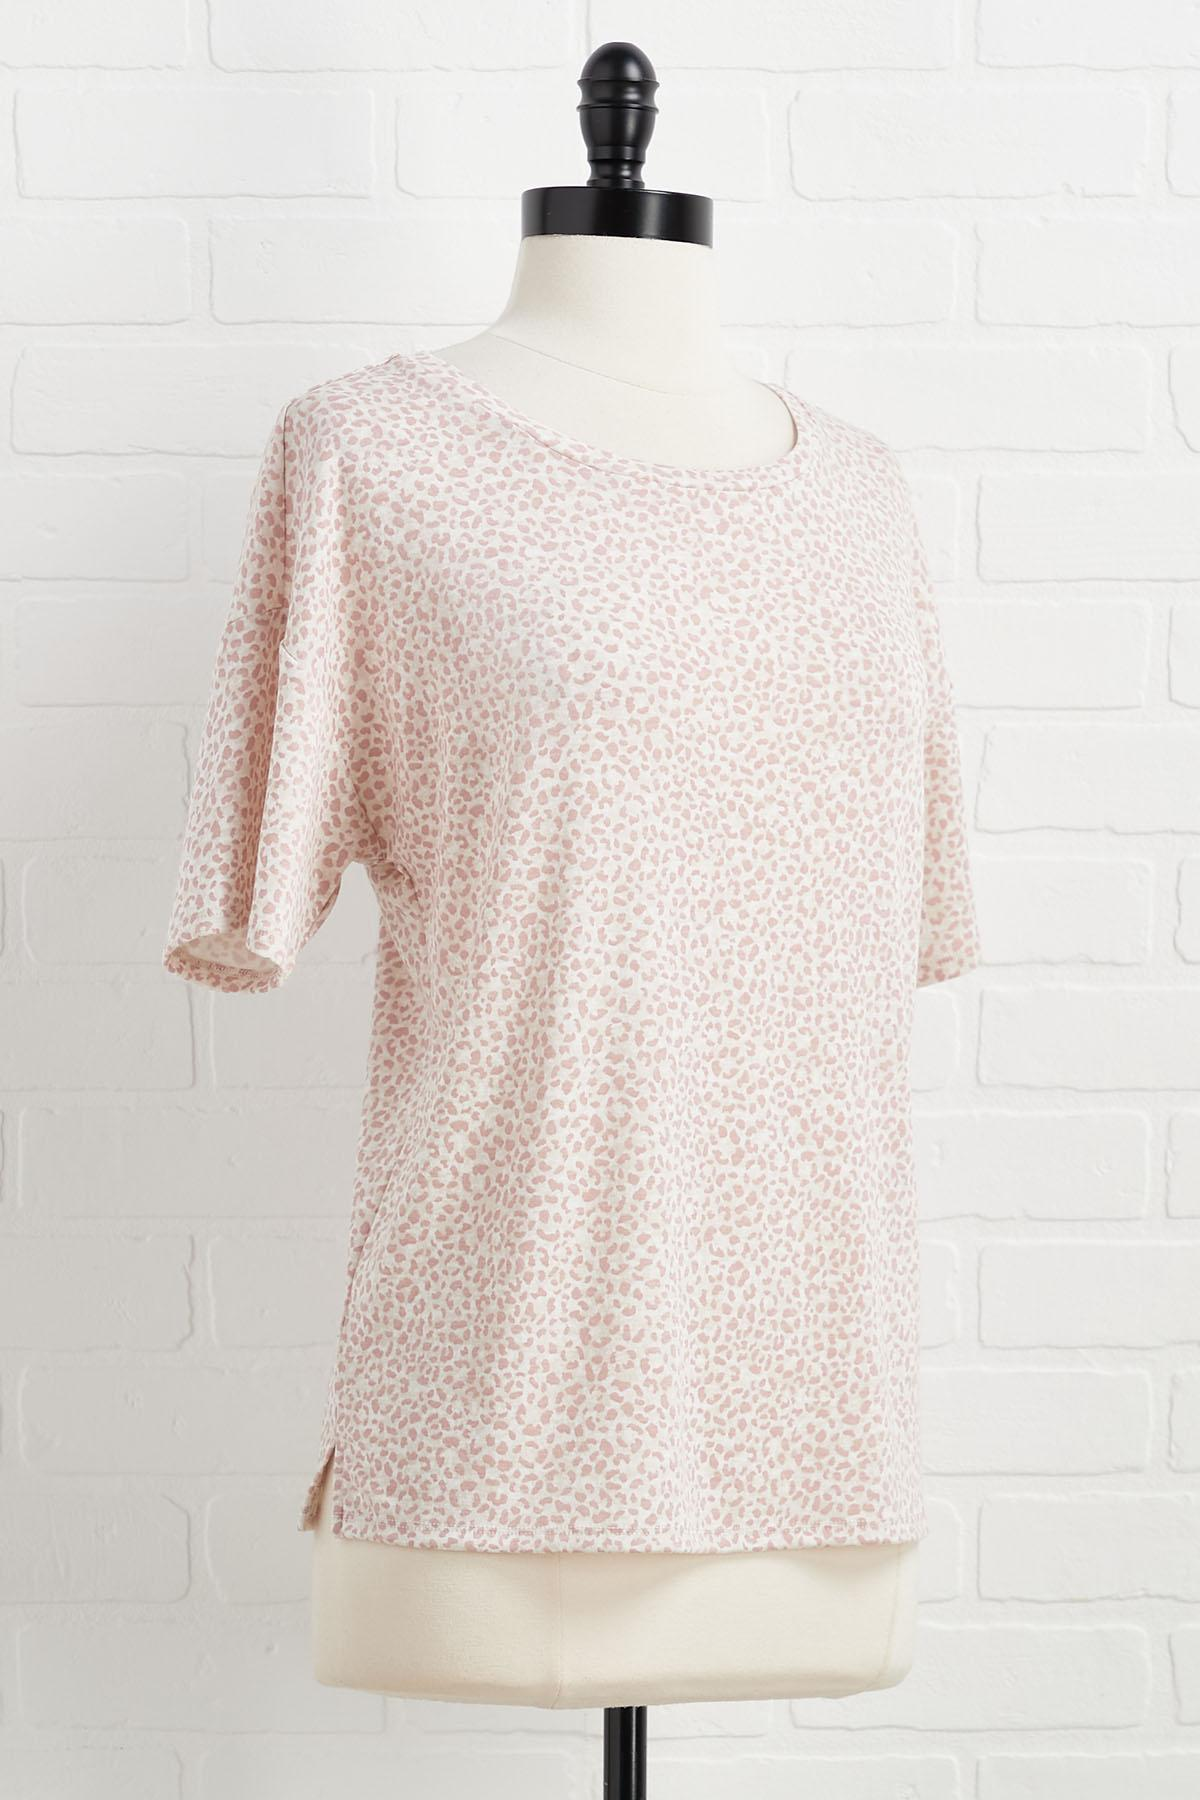 Sand And Snuggles Top